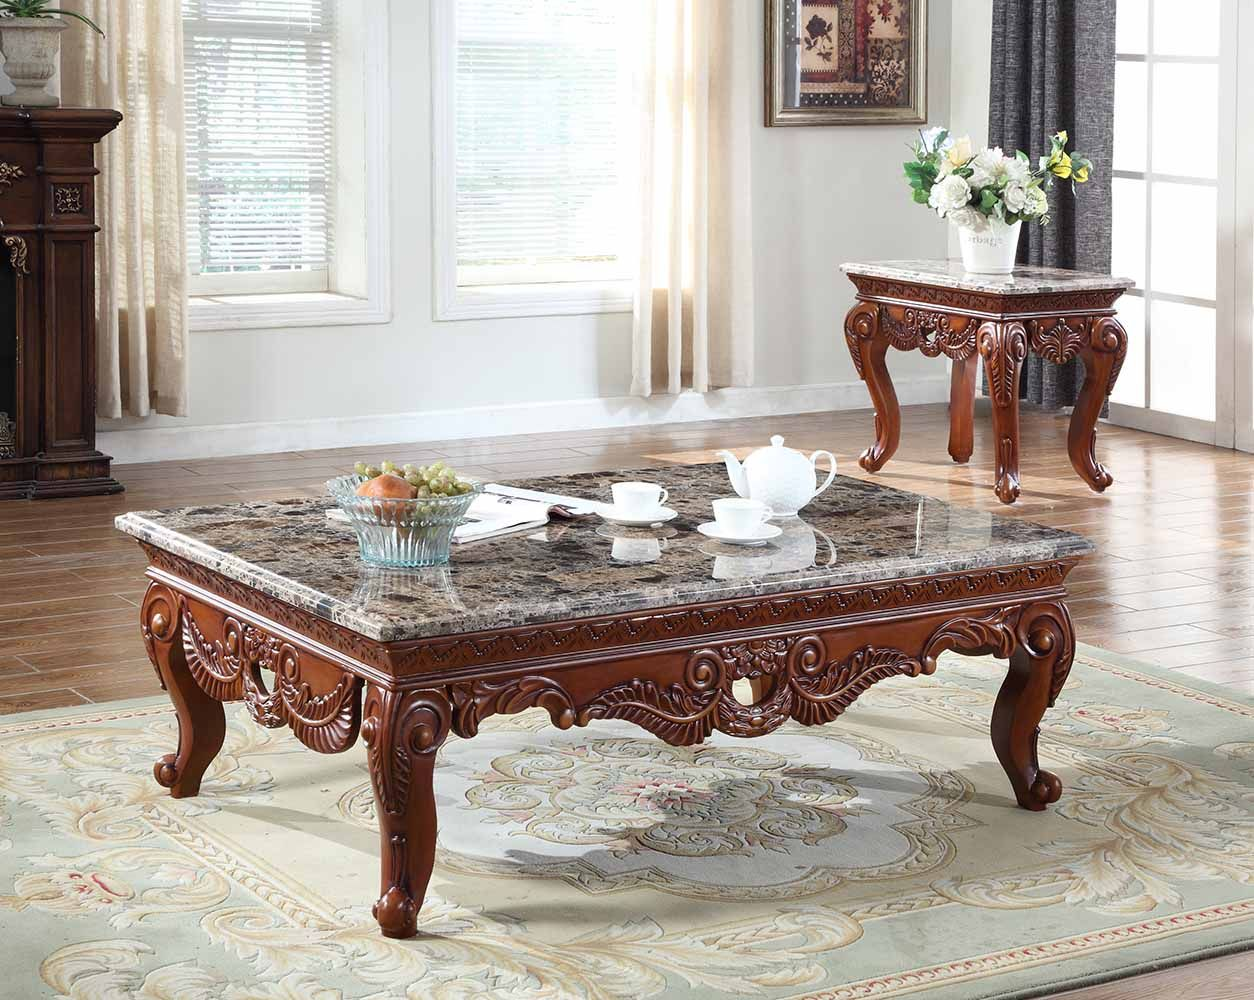 Bordeaux Marble Coffee Table With Hand Carved Design